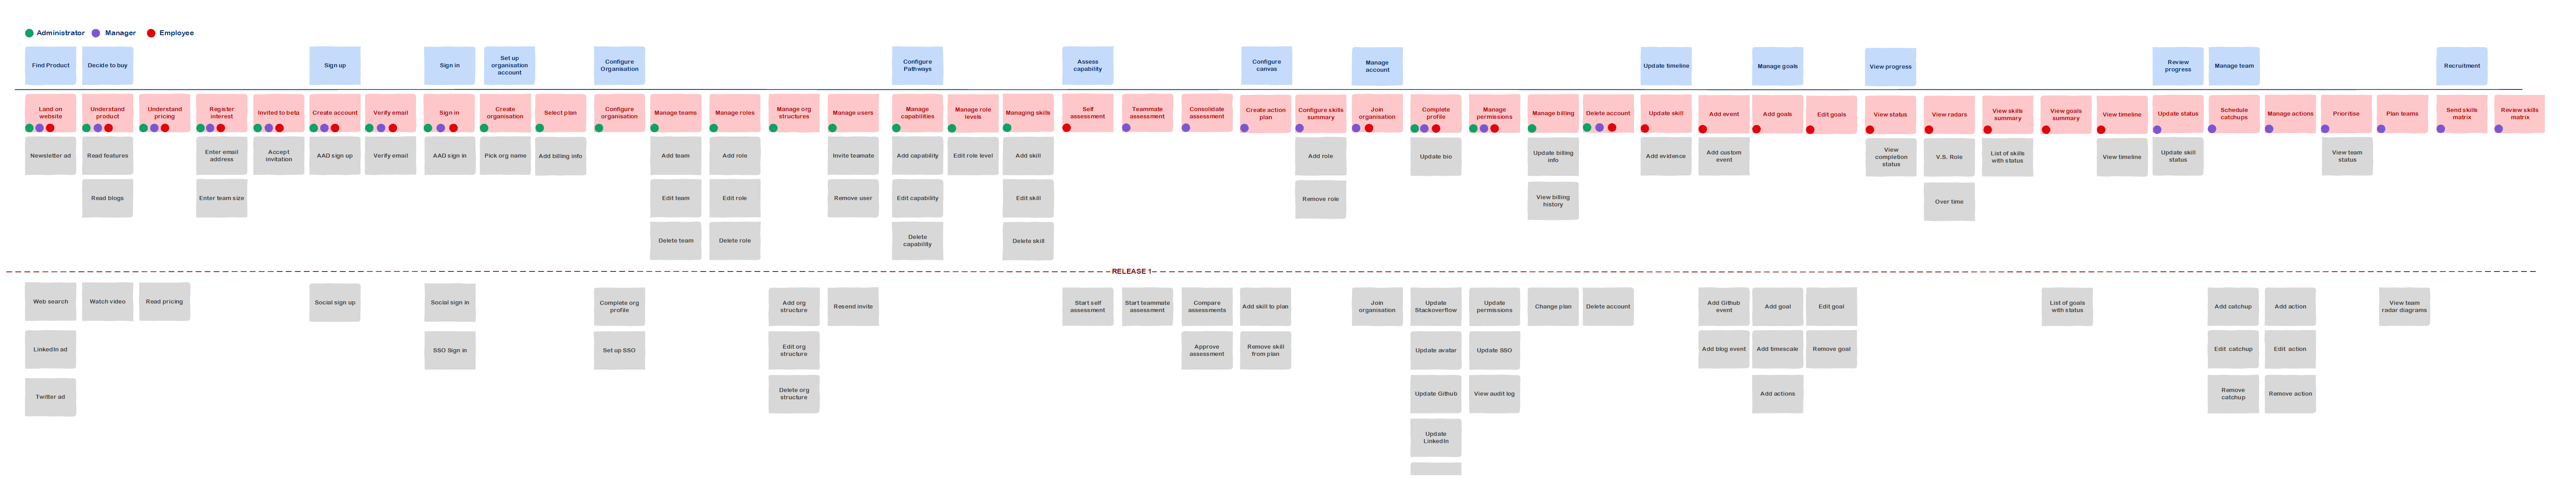 Showing the entire Story Map for a career development application. Shows user stories stacked under features, ordered by users' journeys through the system.